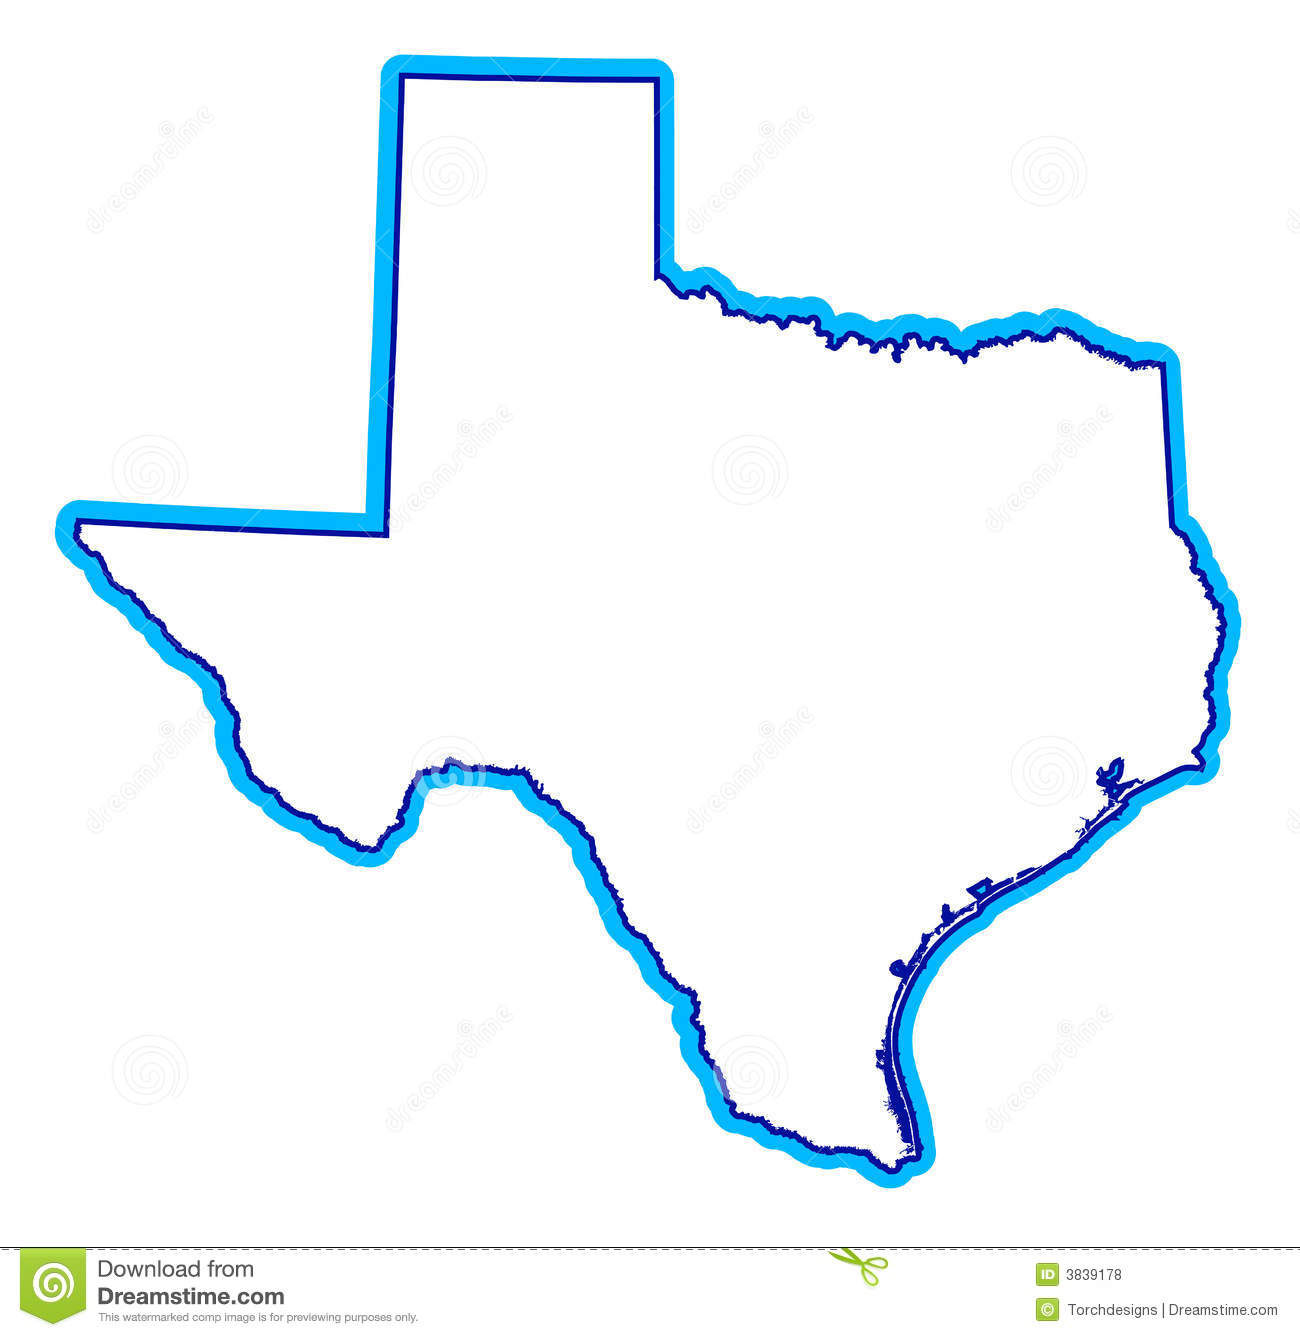 Drawing of state of Texas stock vector. Illustration of artistic ...